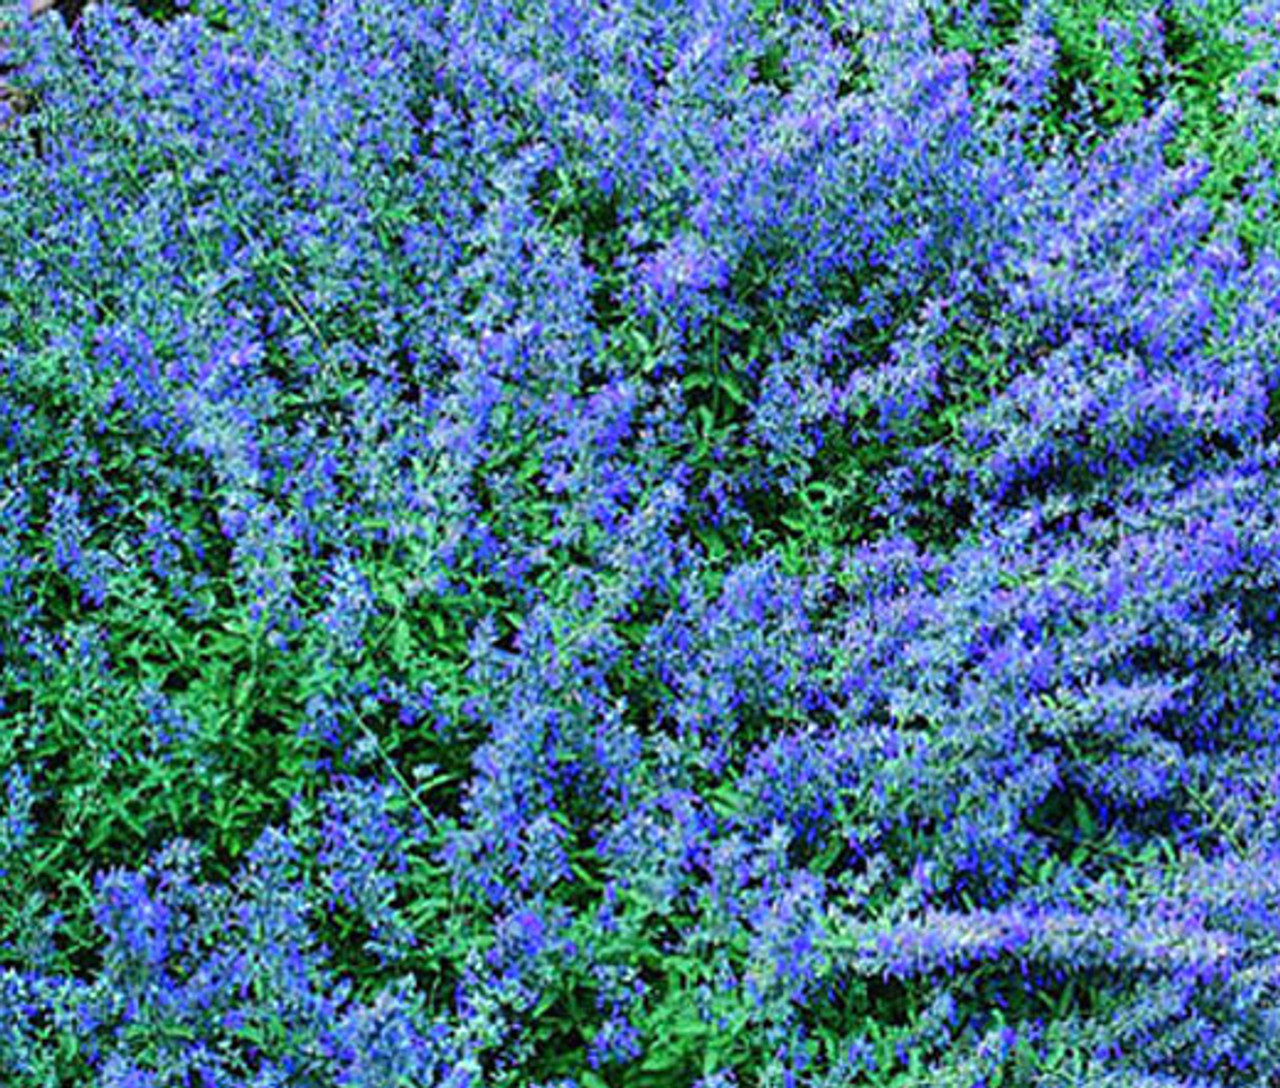 20 PERSIAN CATMINT SEEDS Purple Flowers Cat Bees Ground Cover Nepeta mussinii